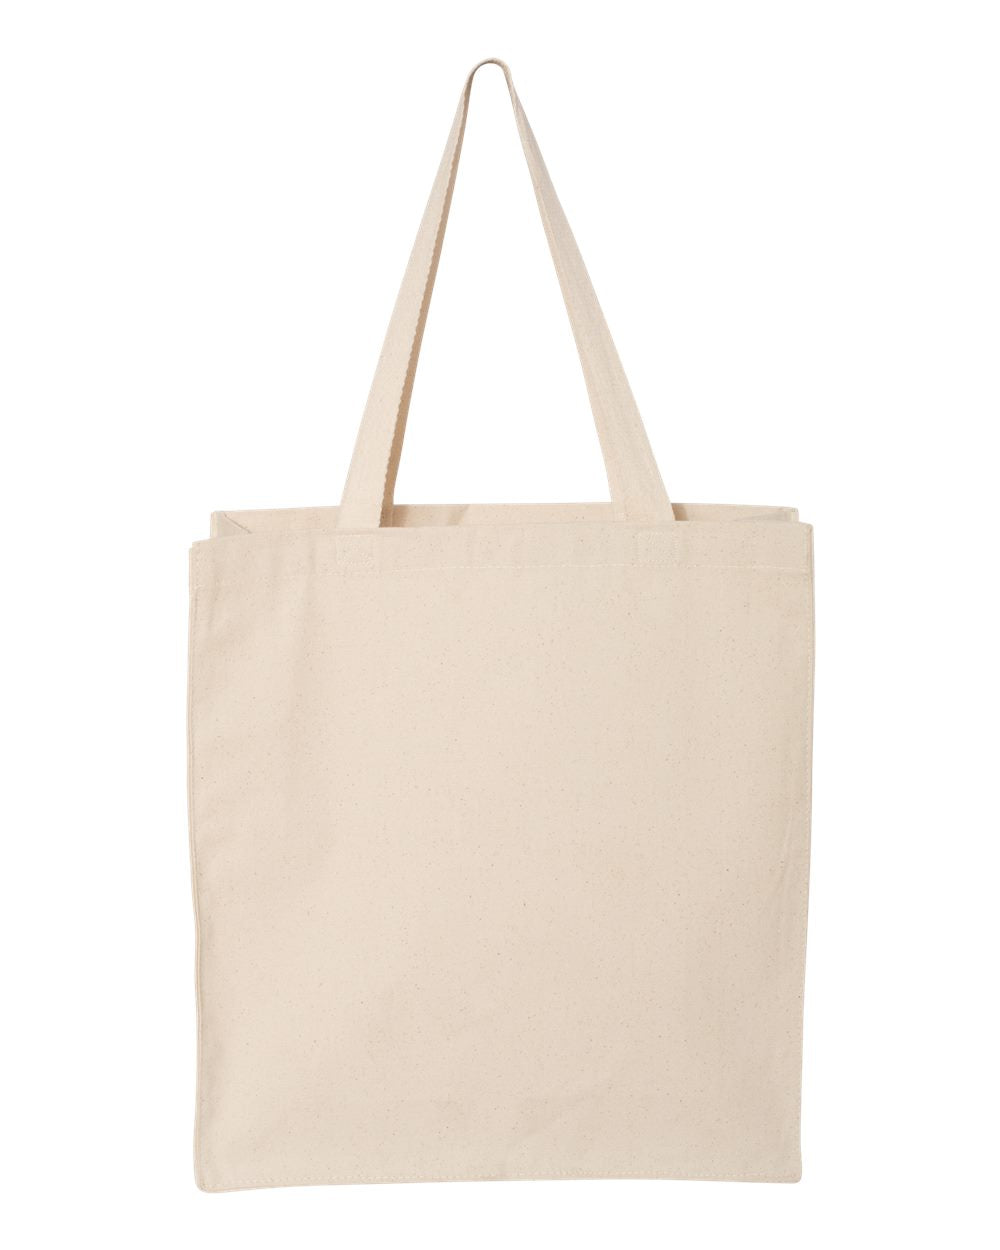 "Customizable Canvas Tote Bag - 14"" x 15"" x 4"""